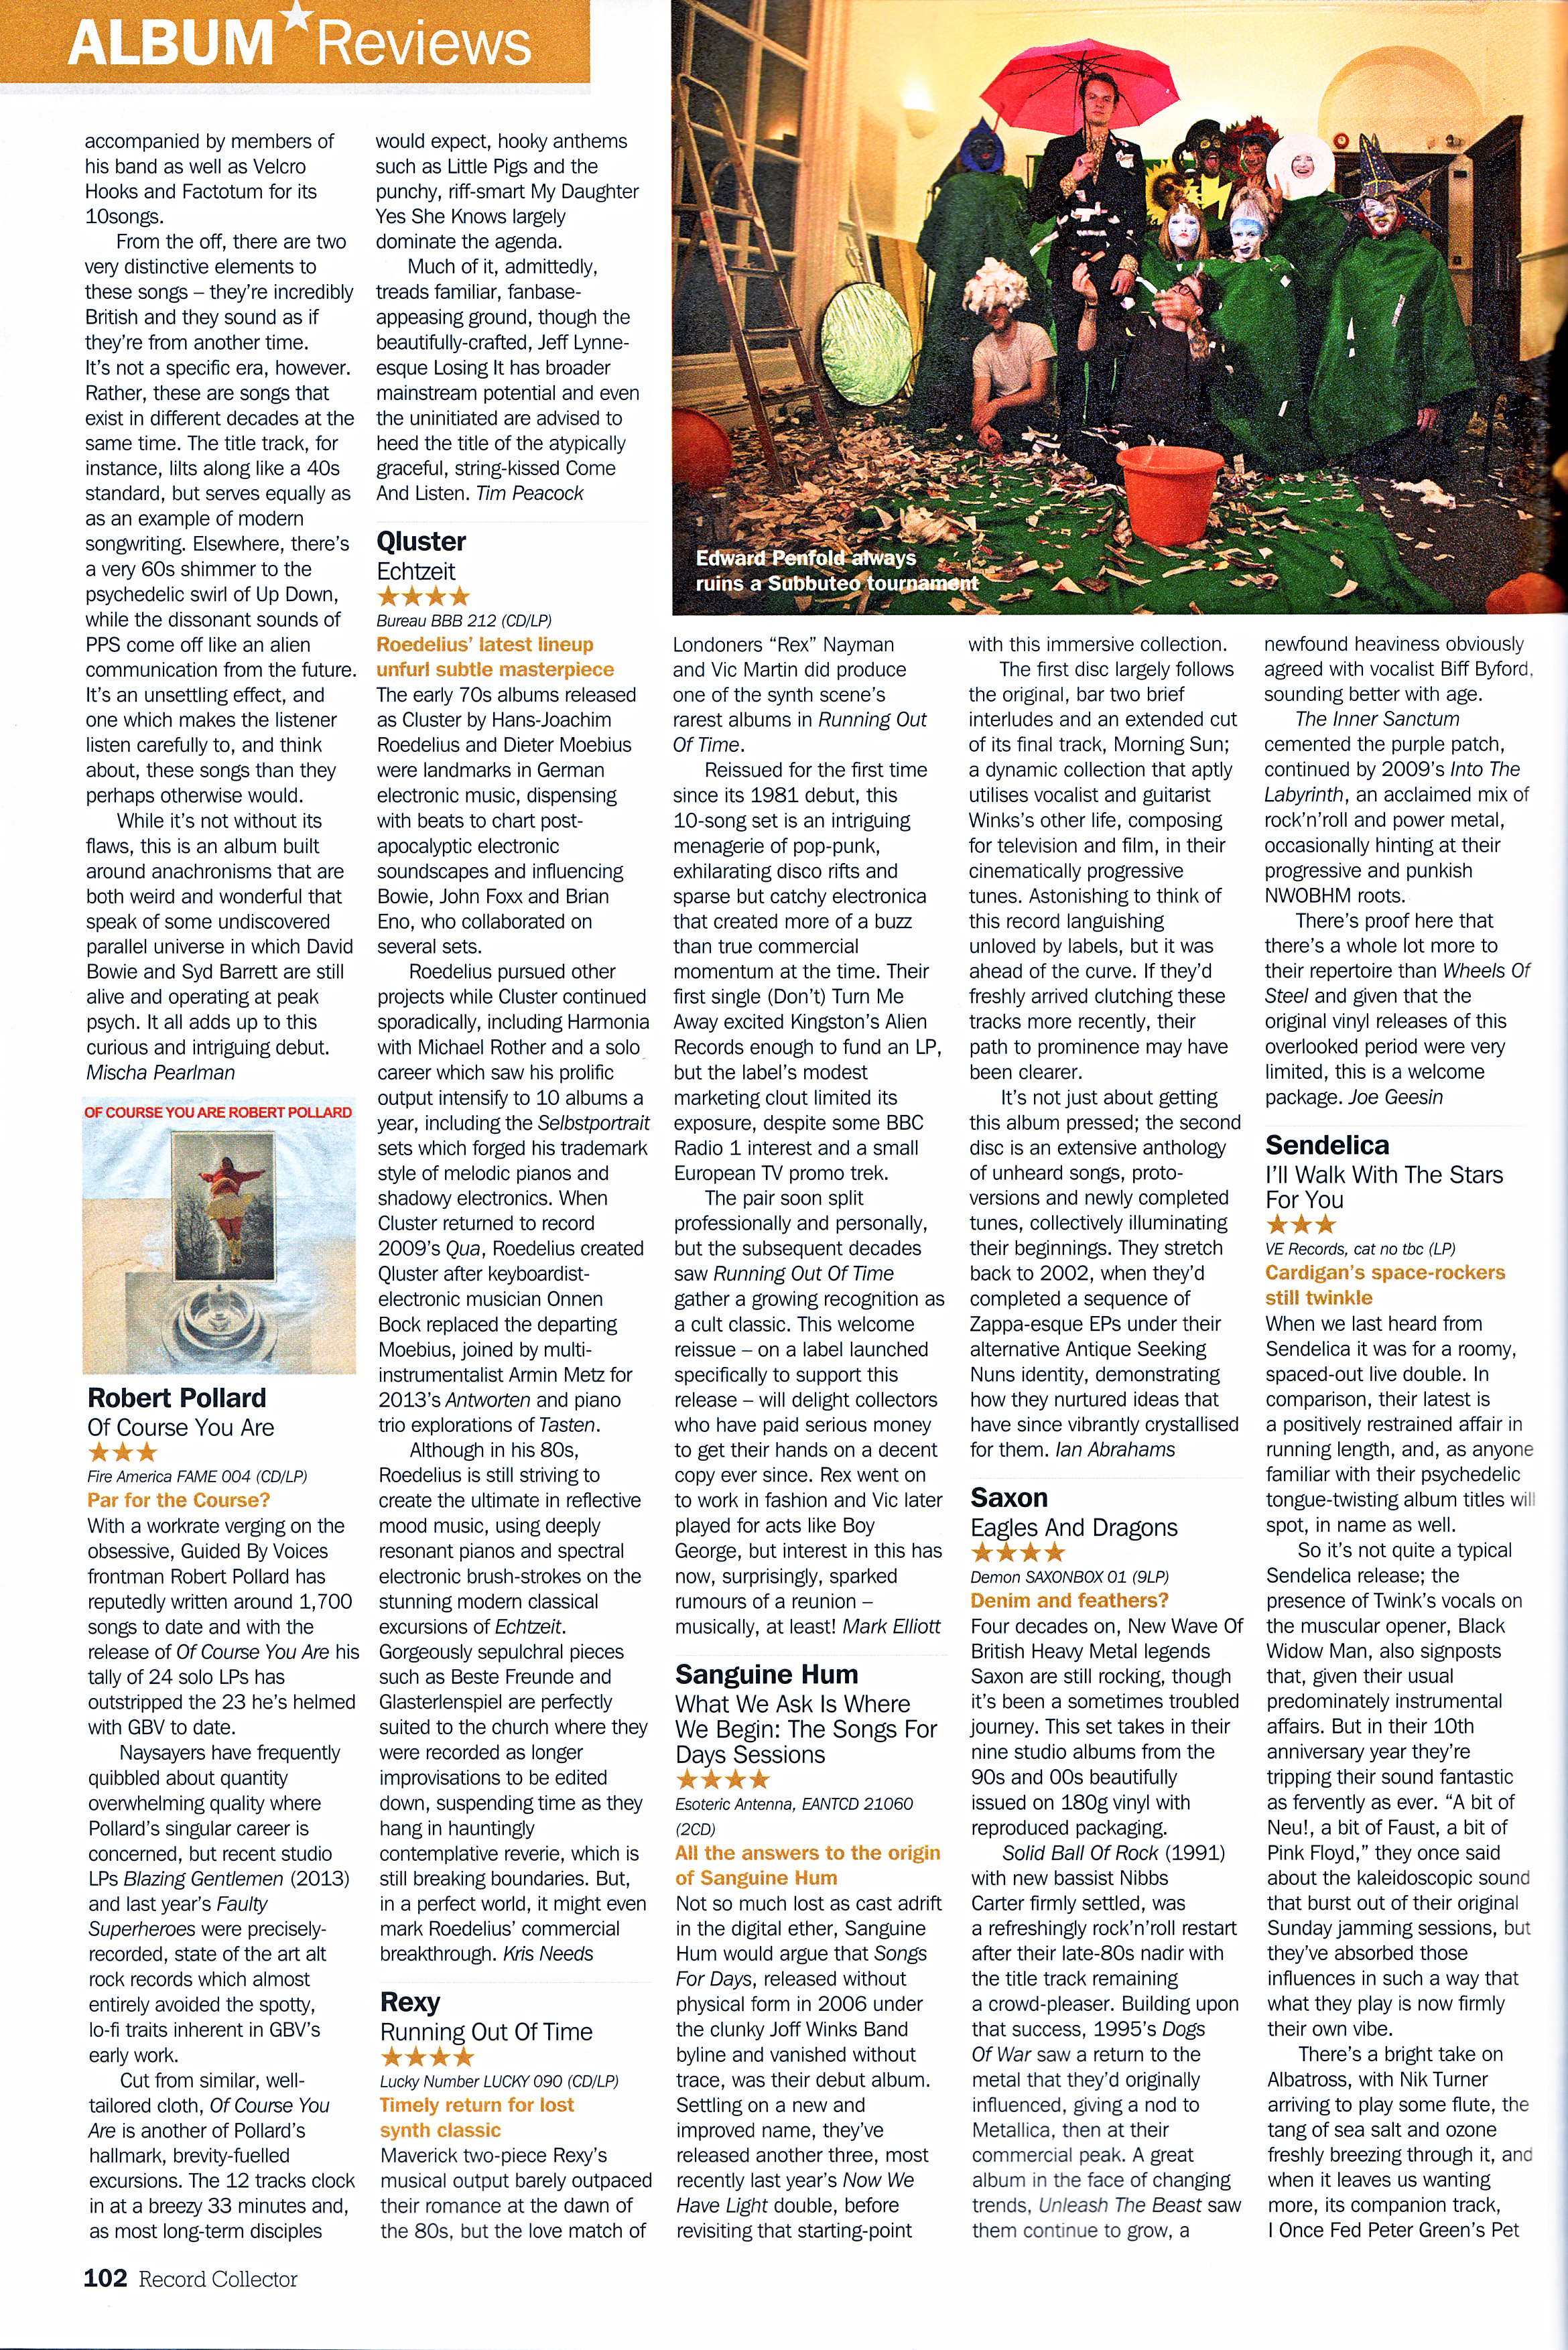 Sanguine Hum | What We Ask Is Where We Begin - Ian Abrahams, Record Collector April 2016